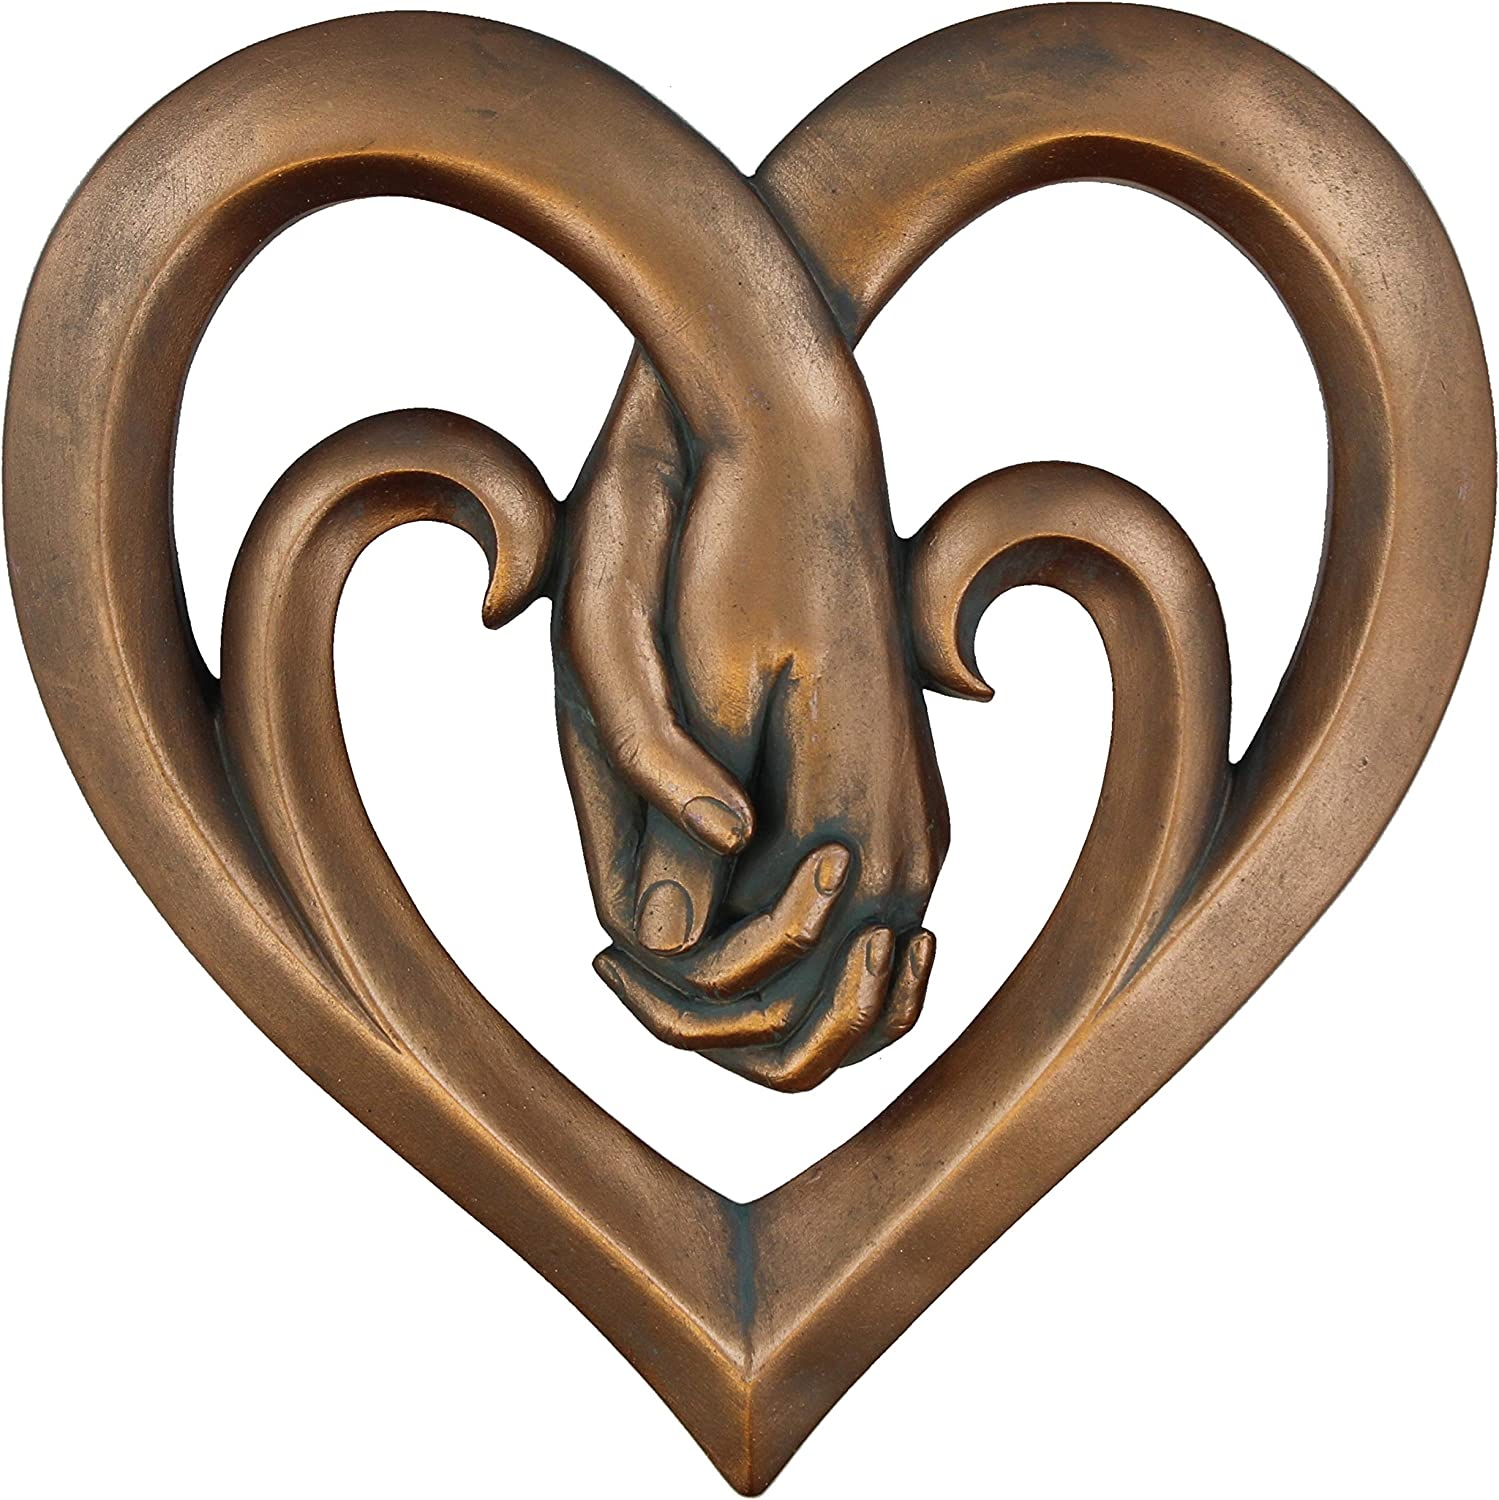 Heart Holding Hands Wall Decor Decorative Art Sculpture - Copper Bronze Verdigris Finish - Forever Love